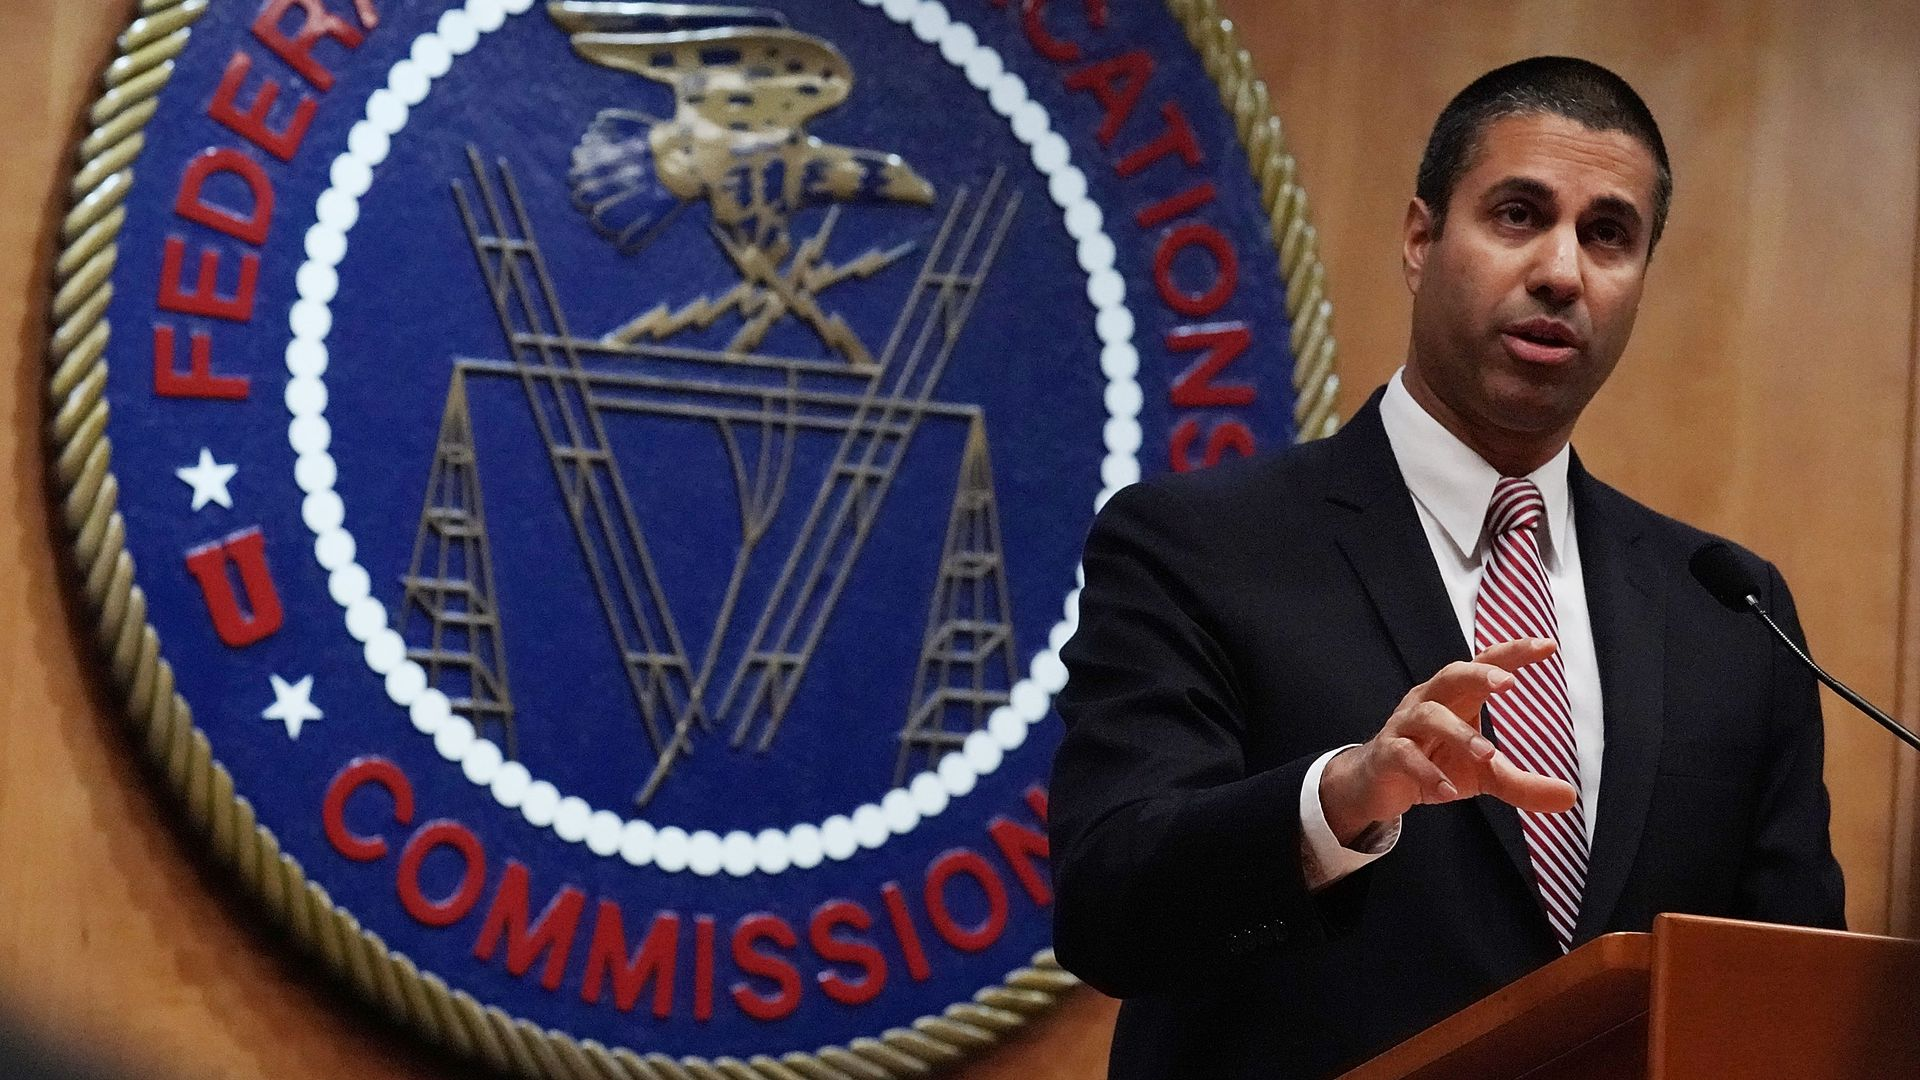 Ajit Pai standing at a podium in front of the FCC seal